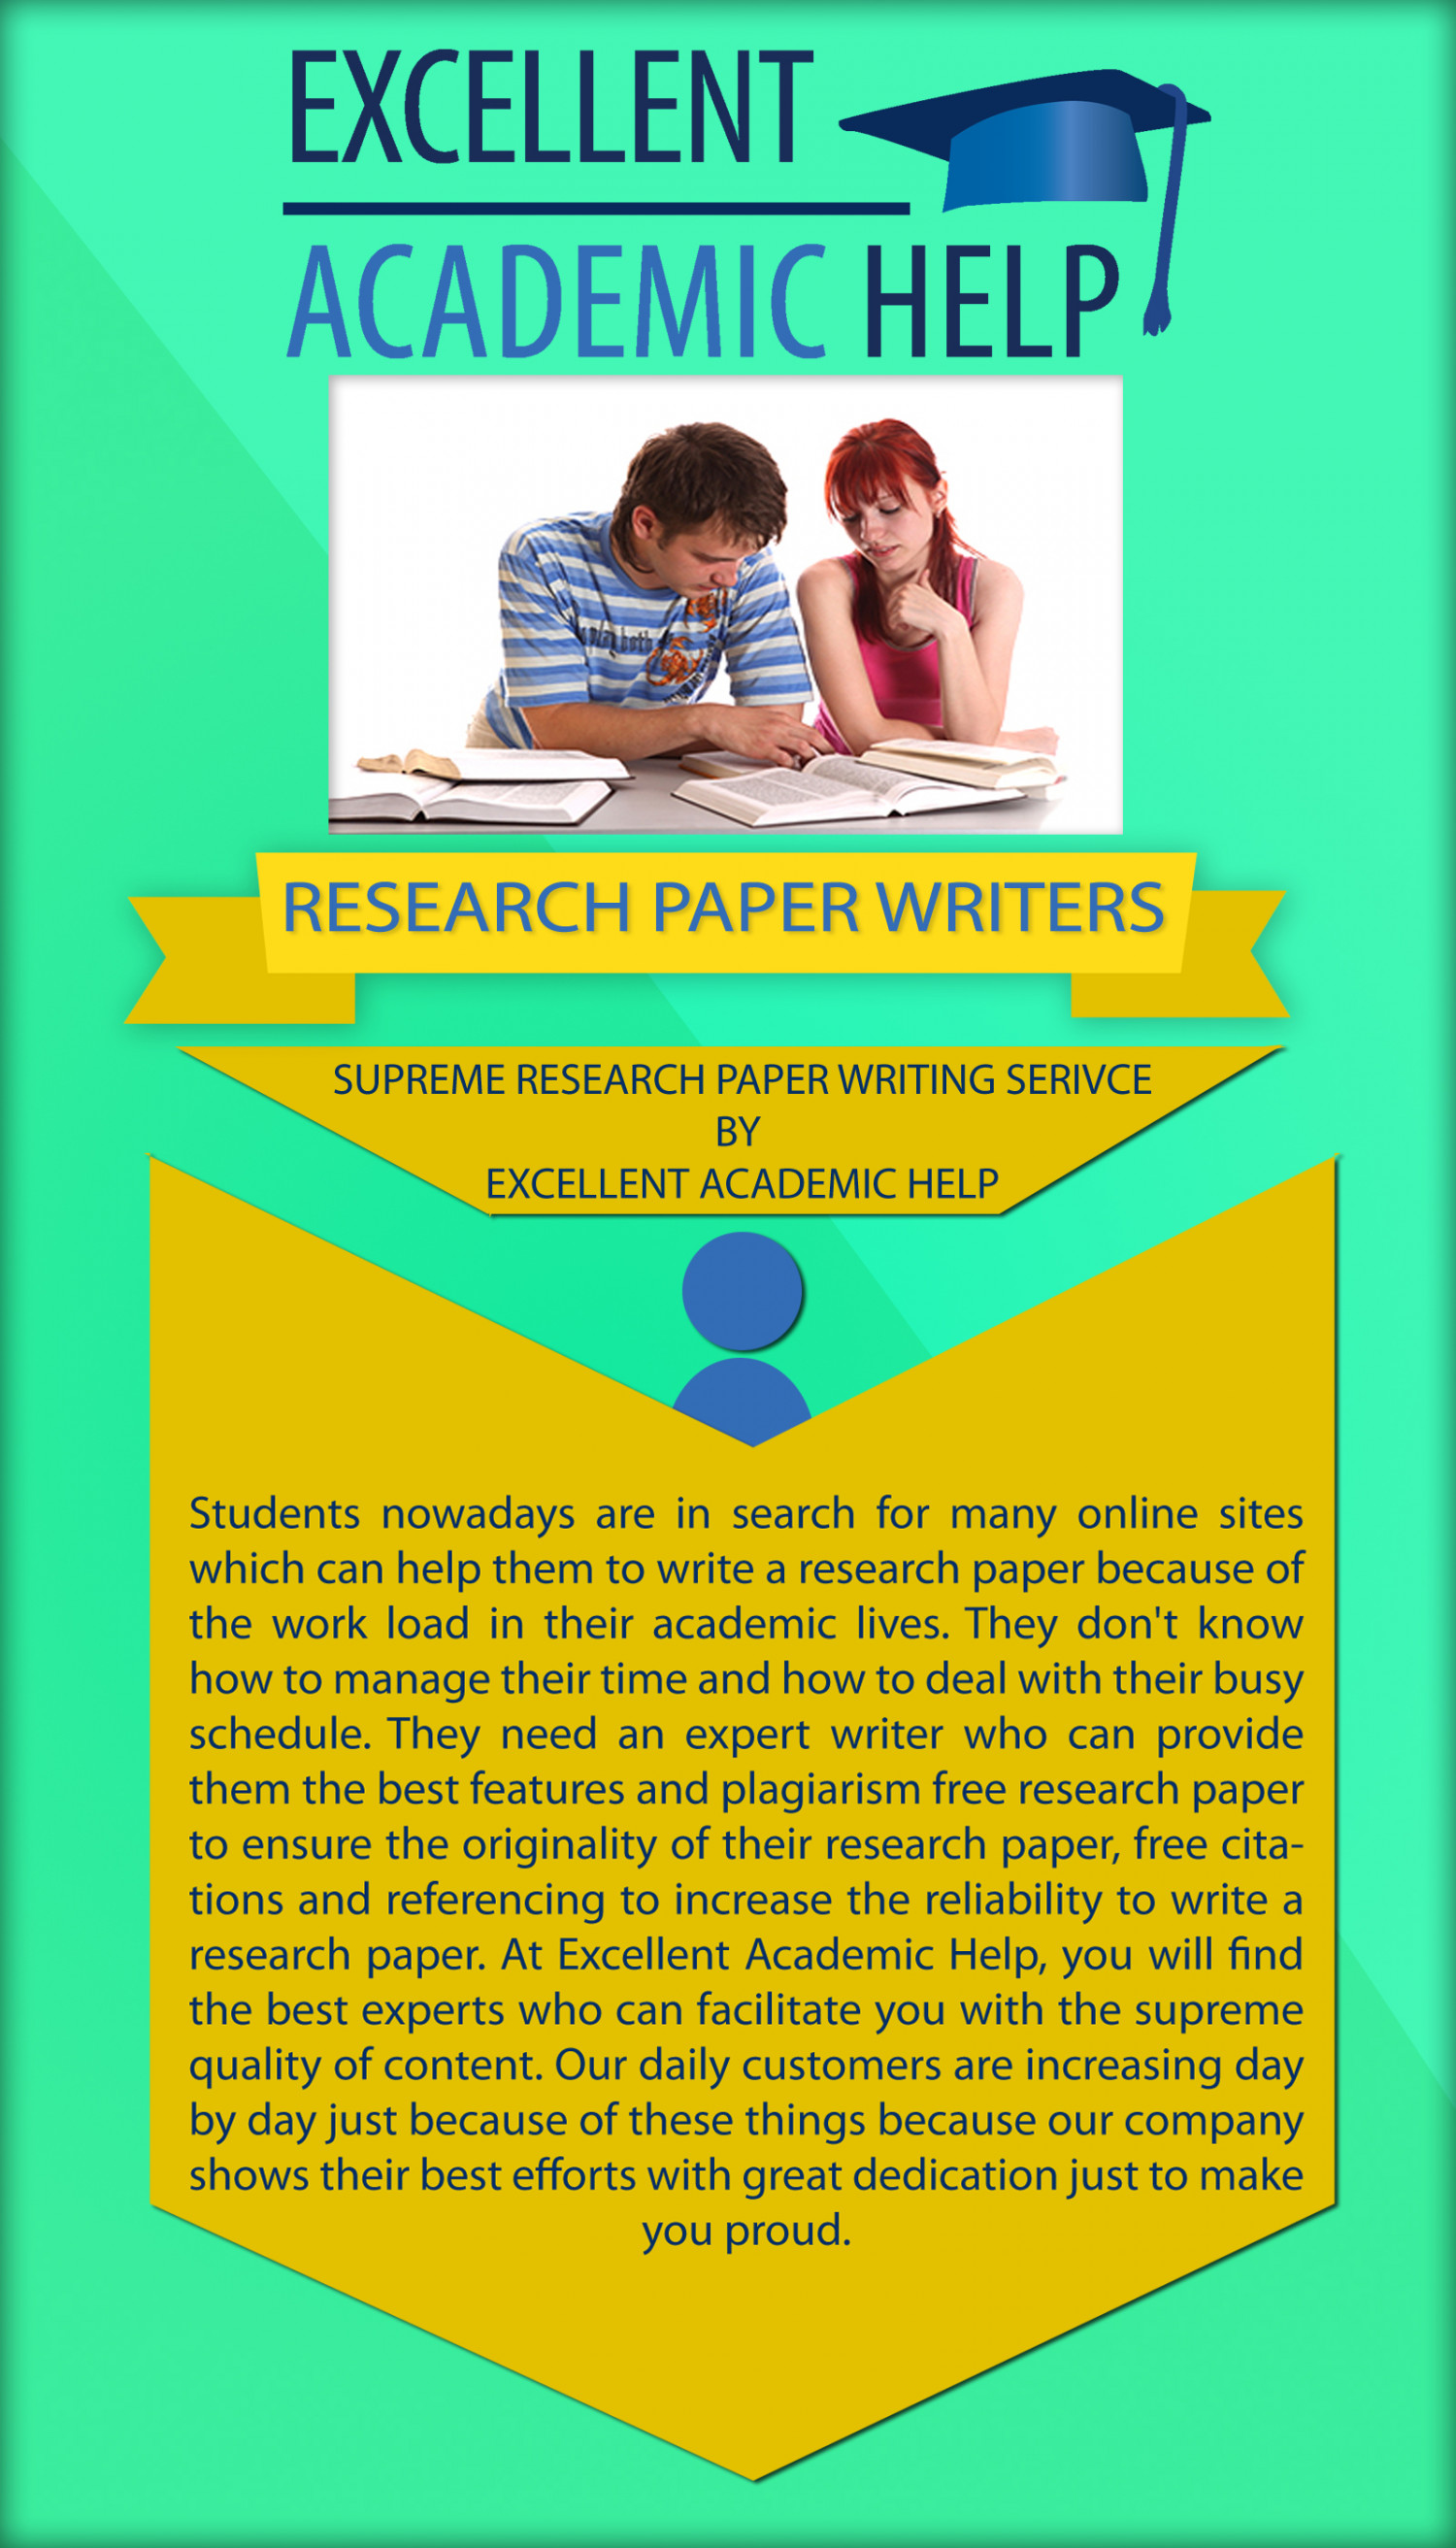 online research paper writing jobs There are few online writing services you can find on the internet that offers this service custom writing essay help research paper writing dissertation.